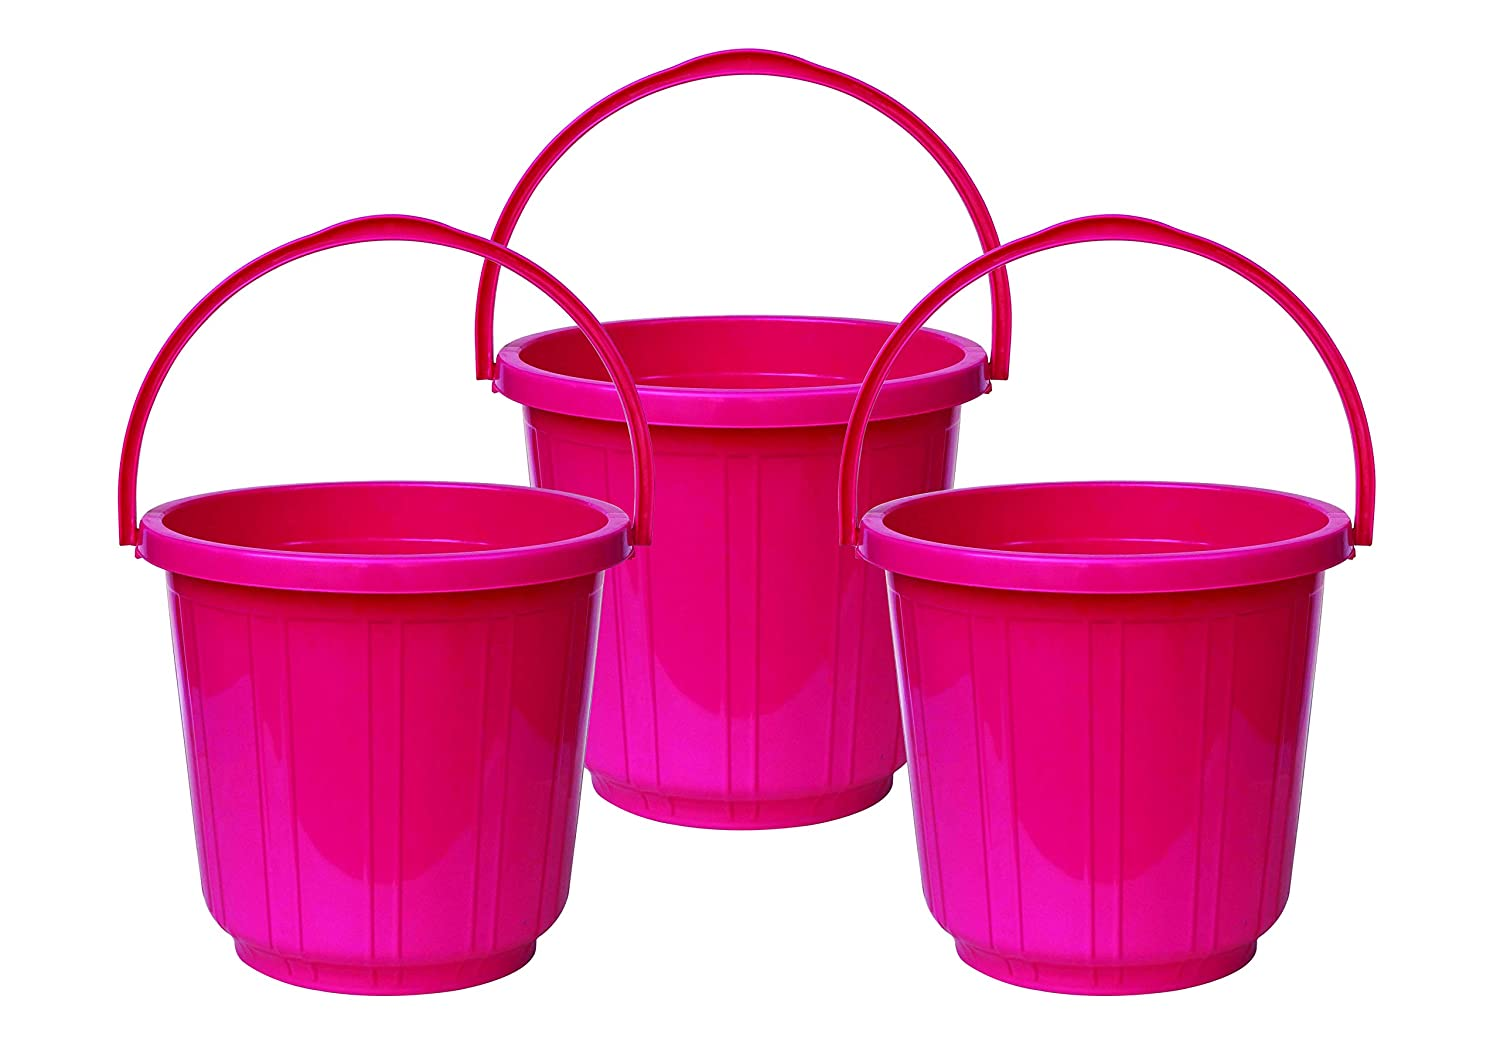 Princeware Super Delux Bucket Having Capacity of 11 Ltrs Each in Set of Three Available in Pink Colour